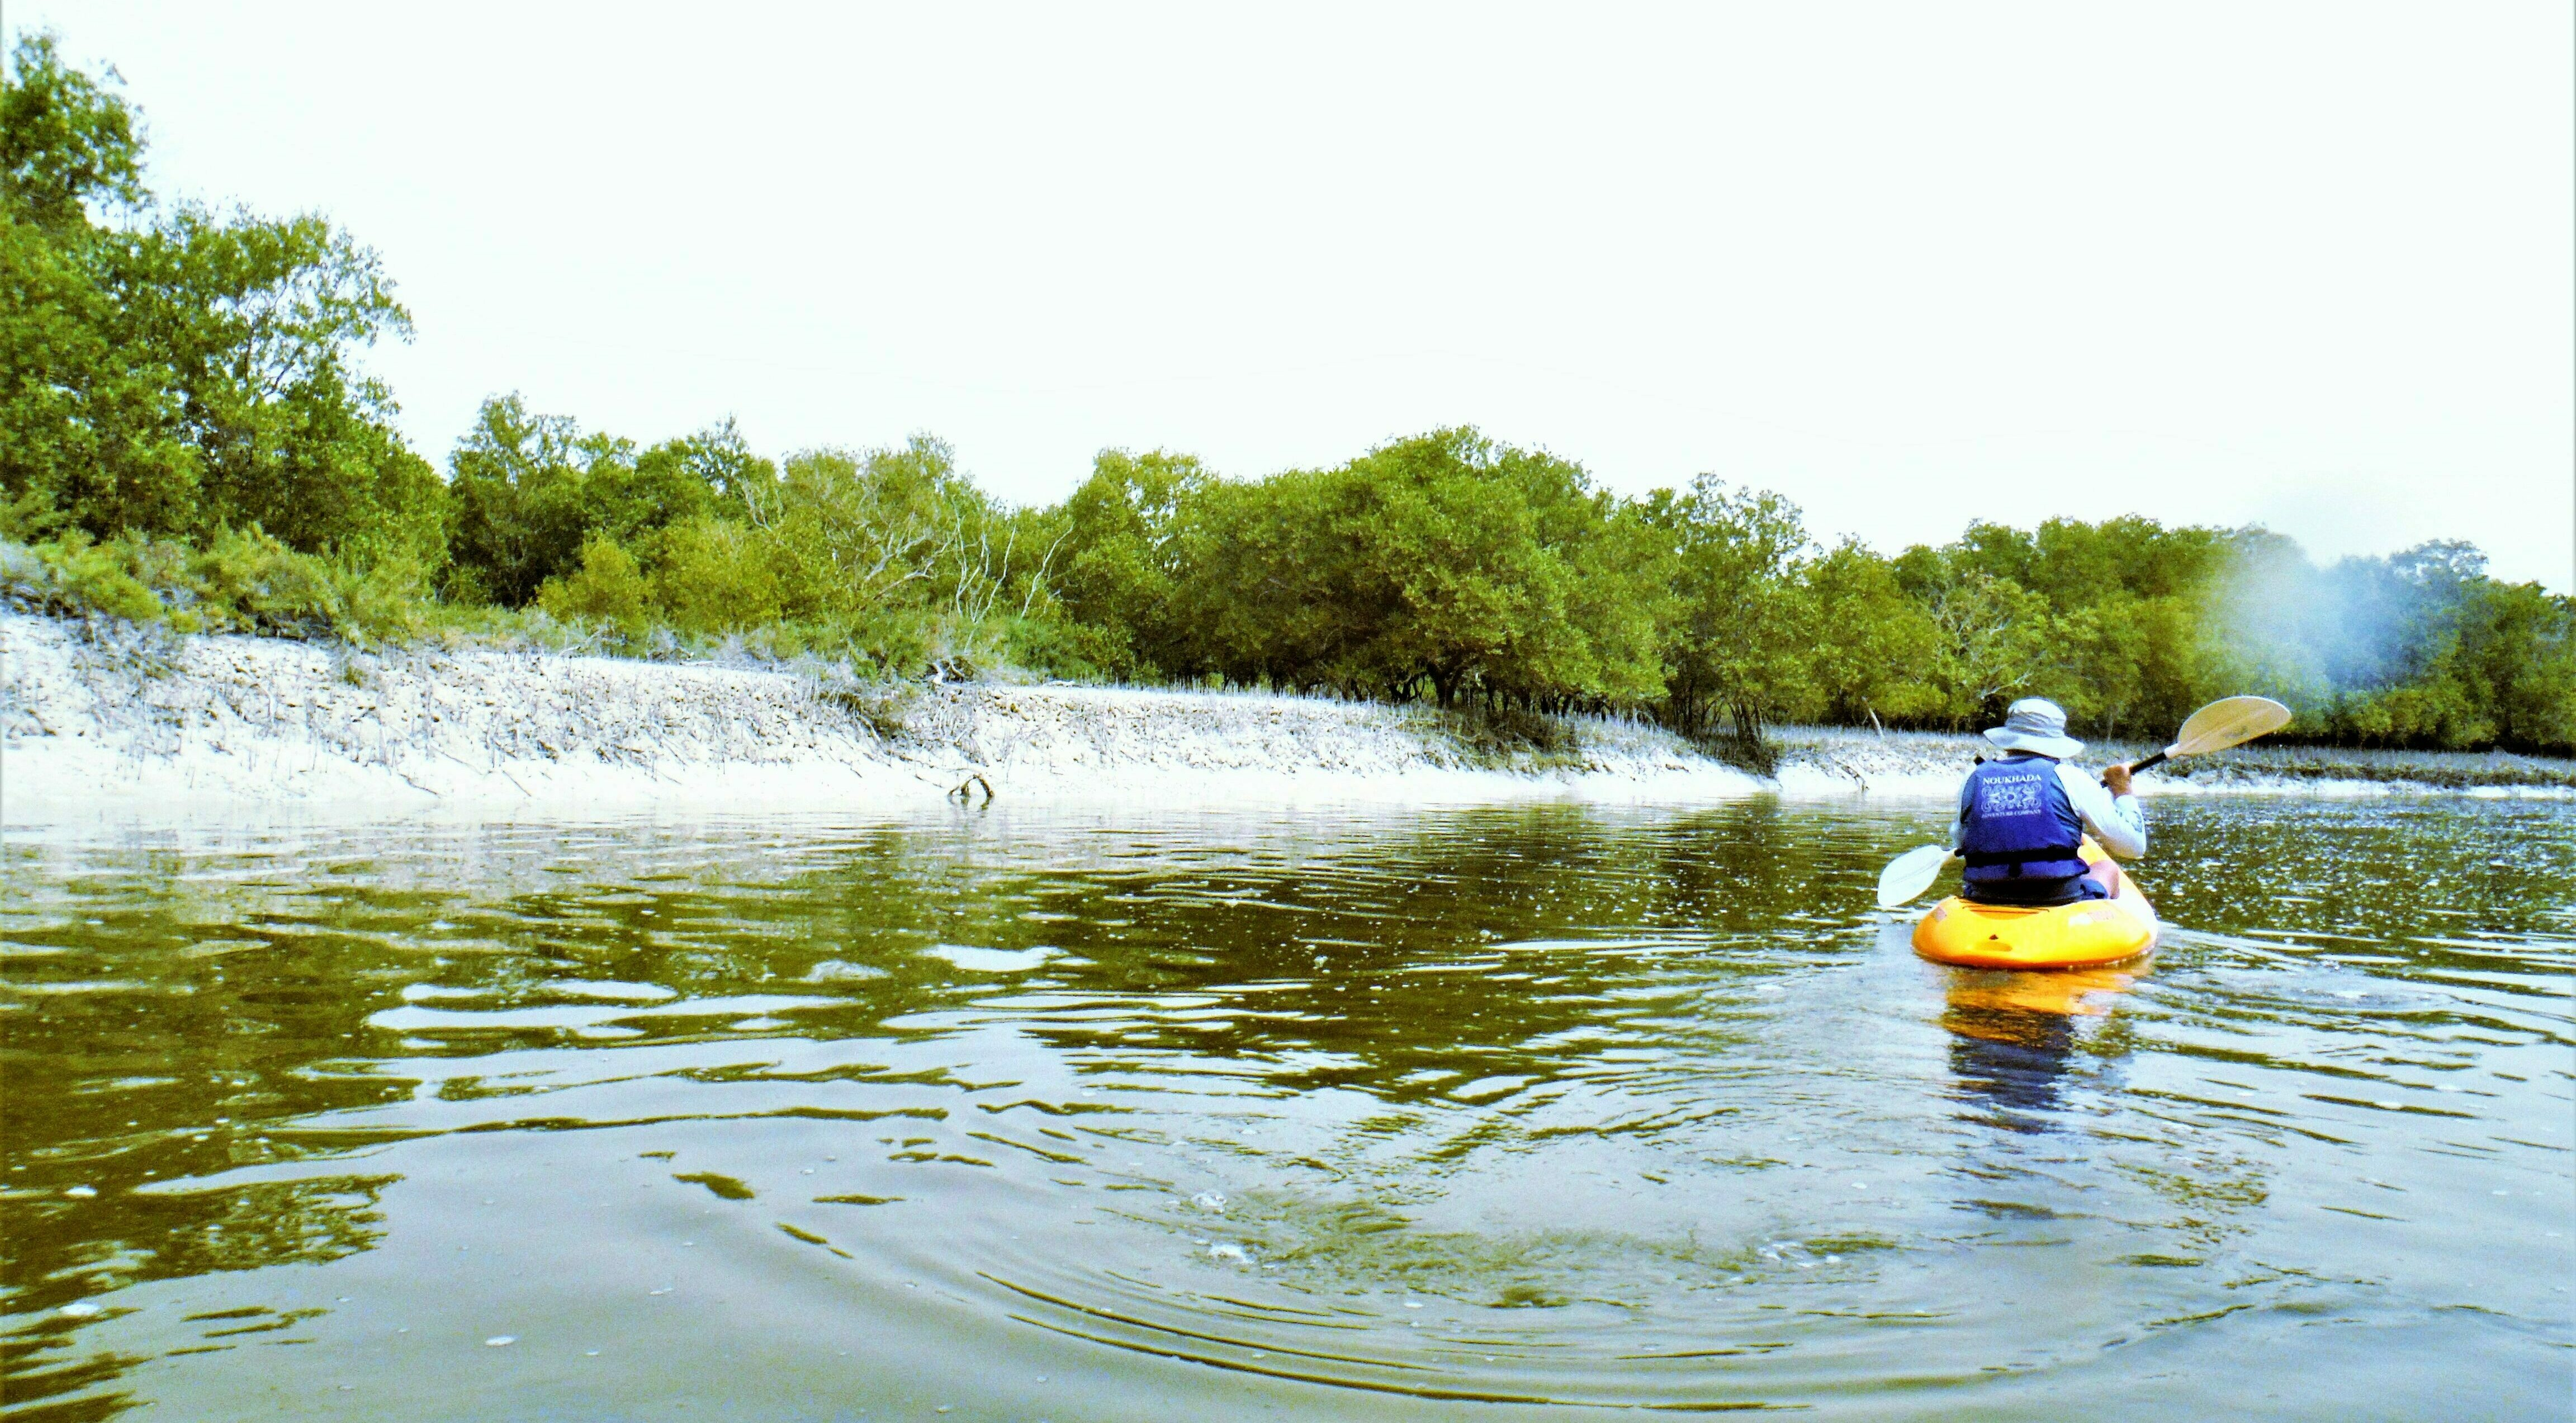 Kayaking at Abu Dhabi Mangrove